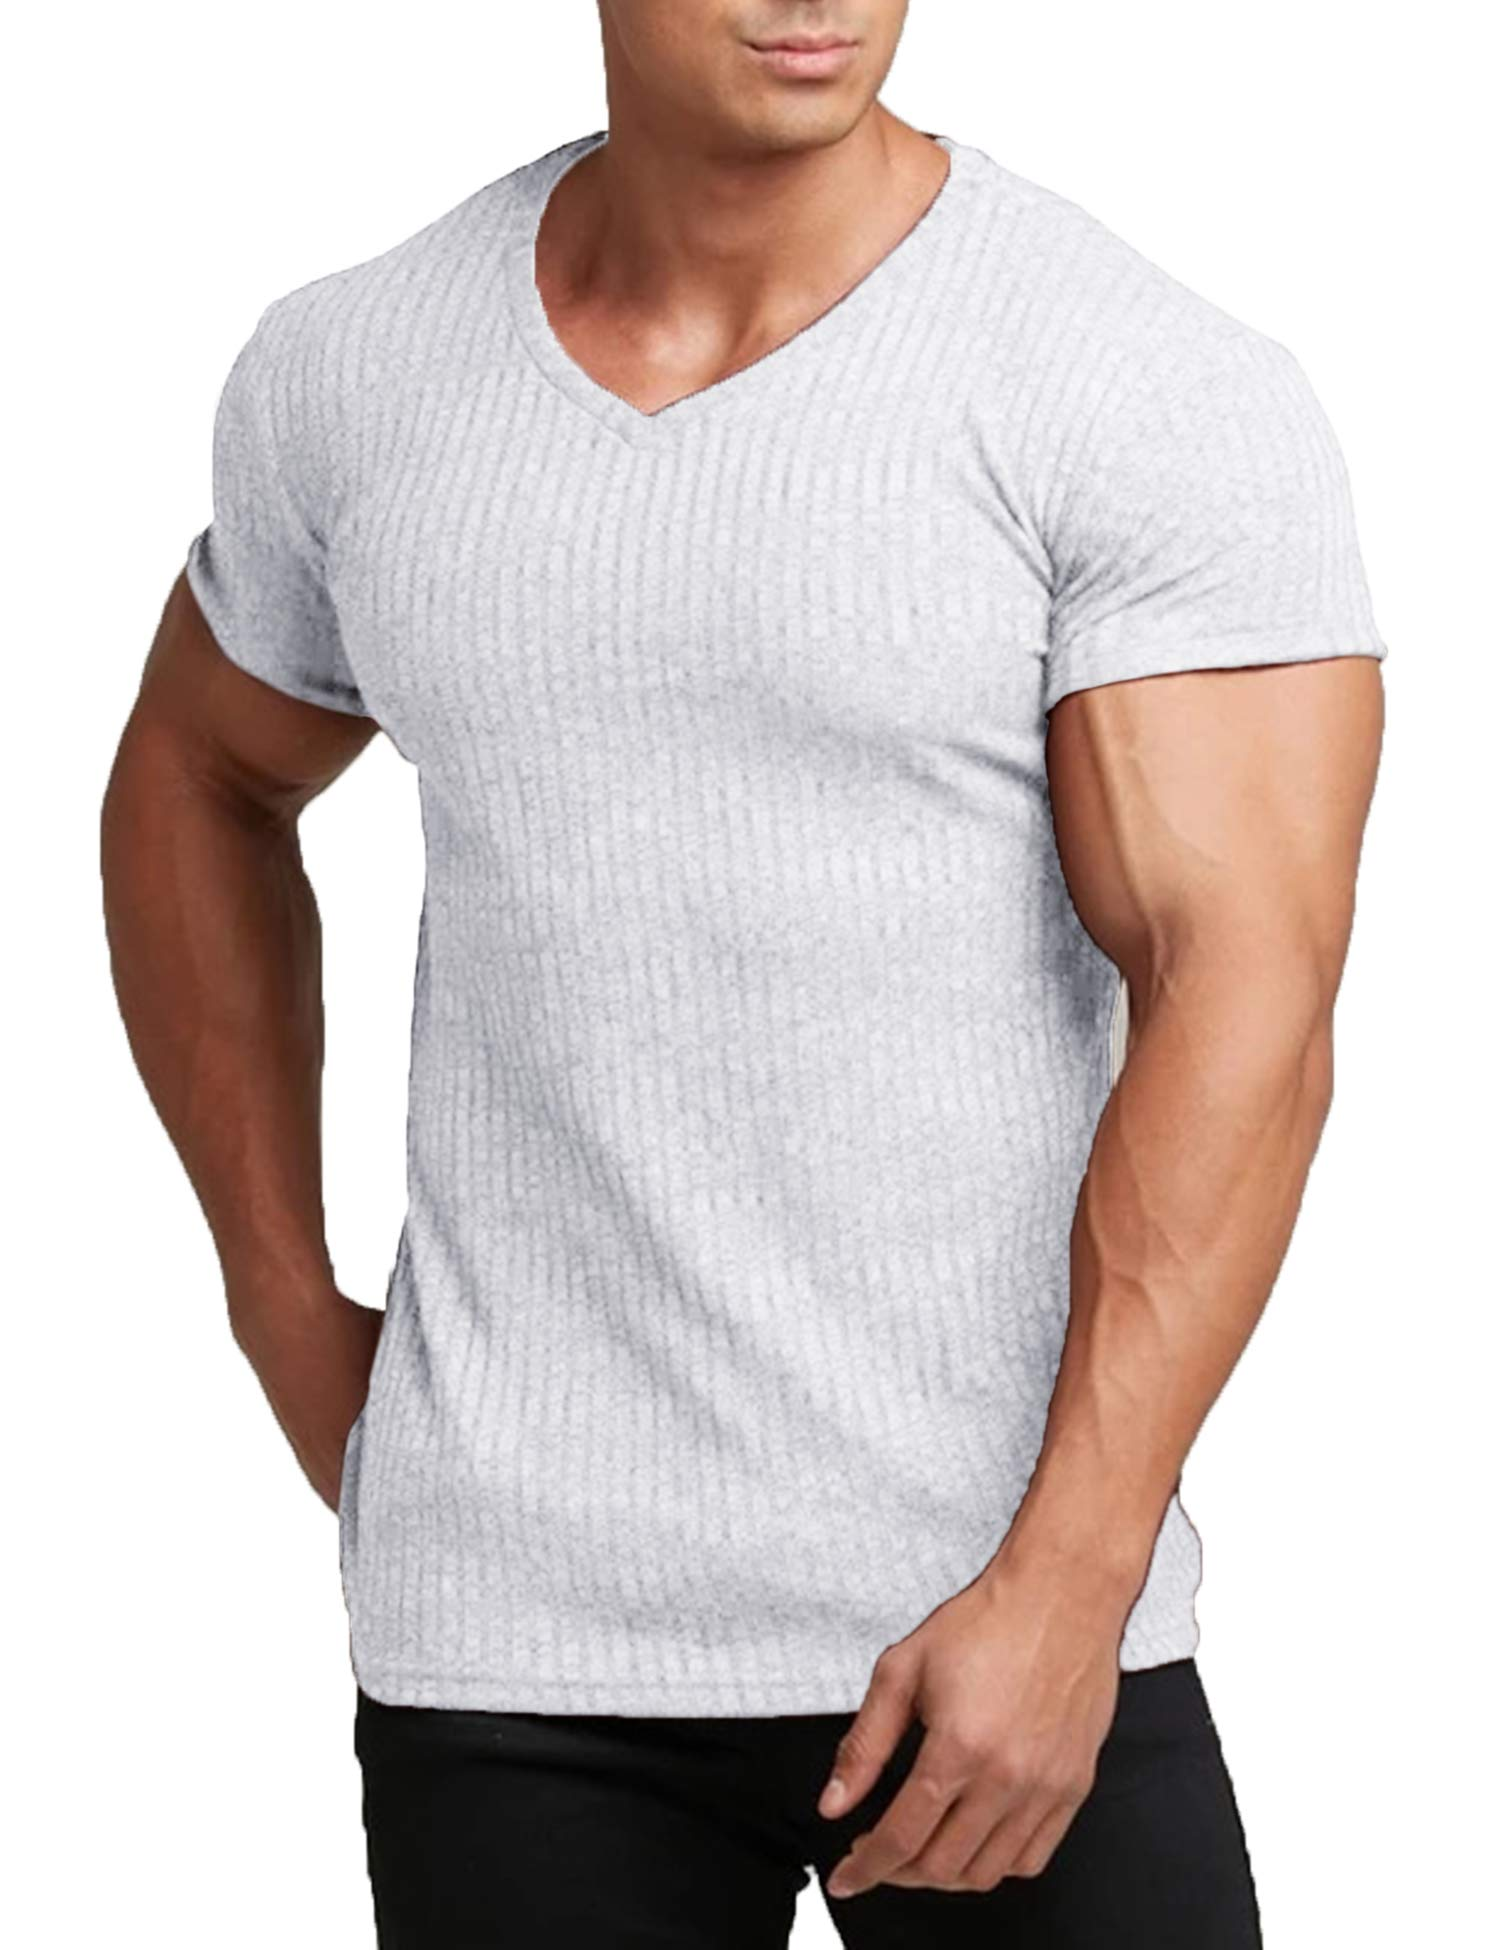 COOFANDY Men's Muscle T Shirts Stretch Short Sleeve V Neck Bodybuilding Workout Tee Shirts